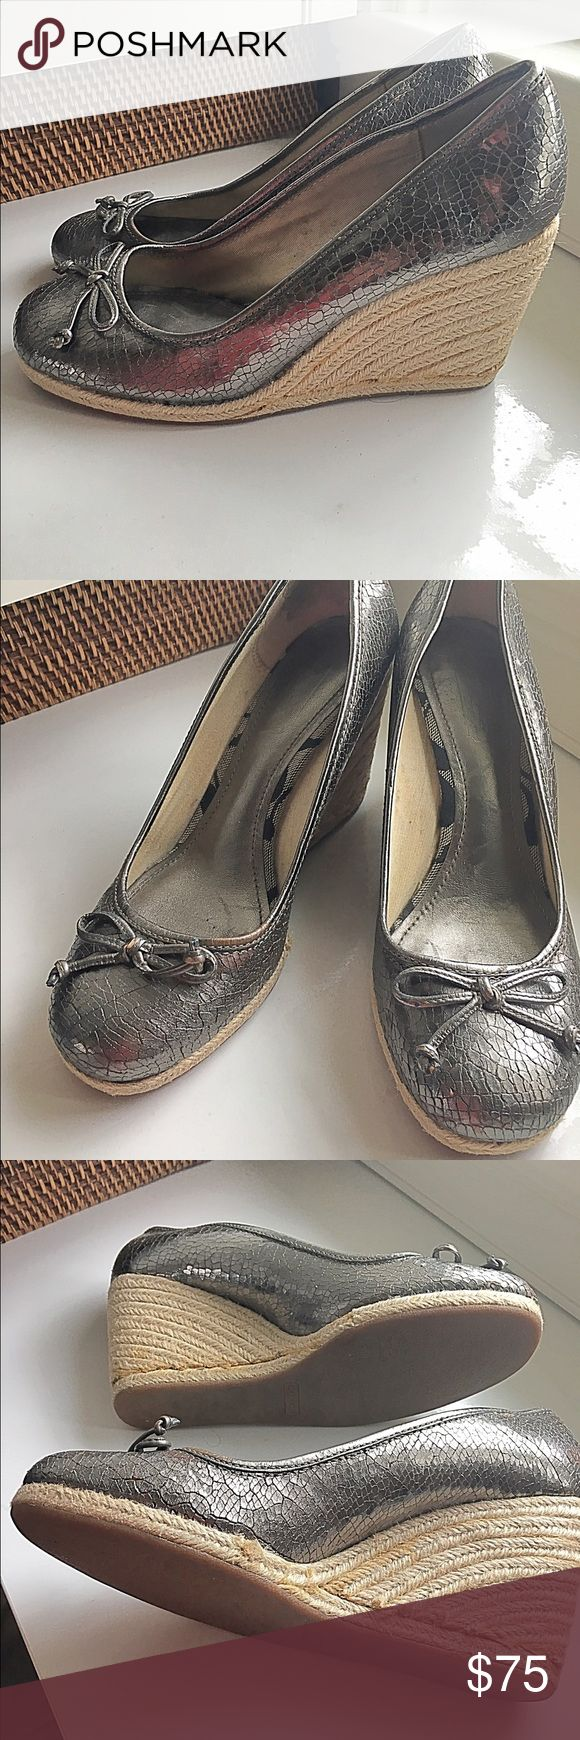 Coach silver espadrilles Fantastic Coach silver espadrilles with crackle leather, comfortable, on-trend and perfect for summer dresses and pants Coach Shoes Espadrilles